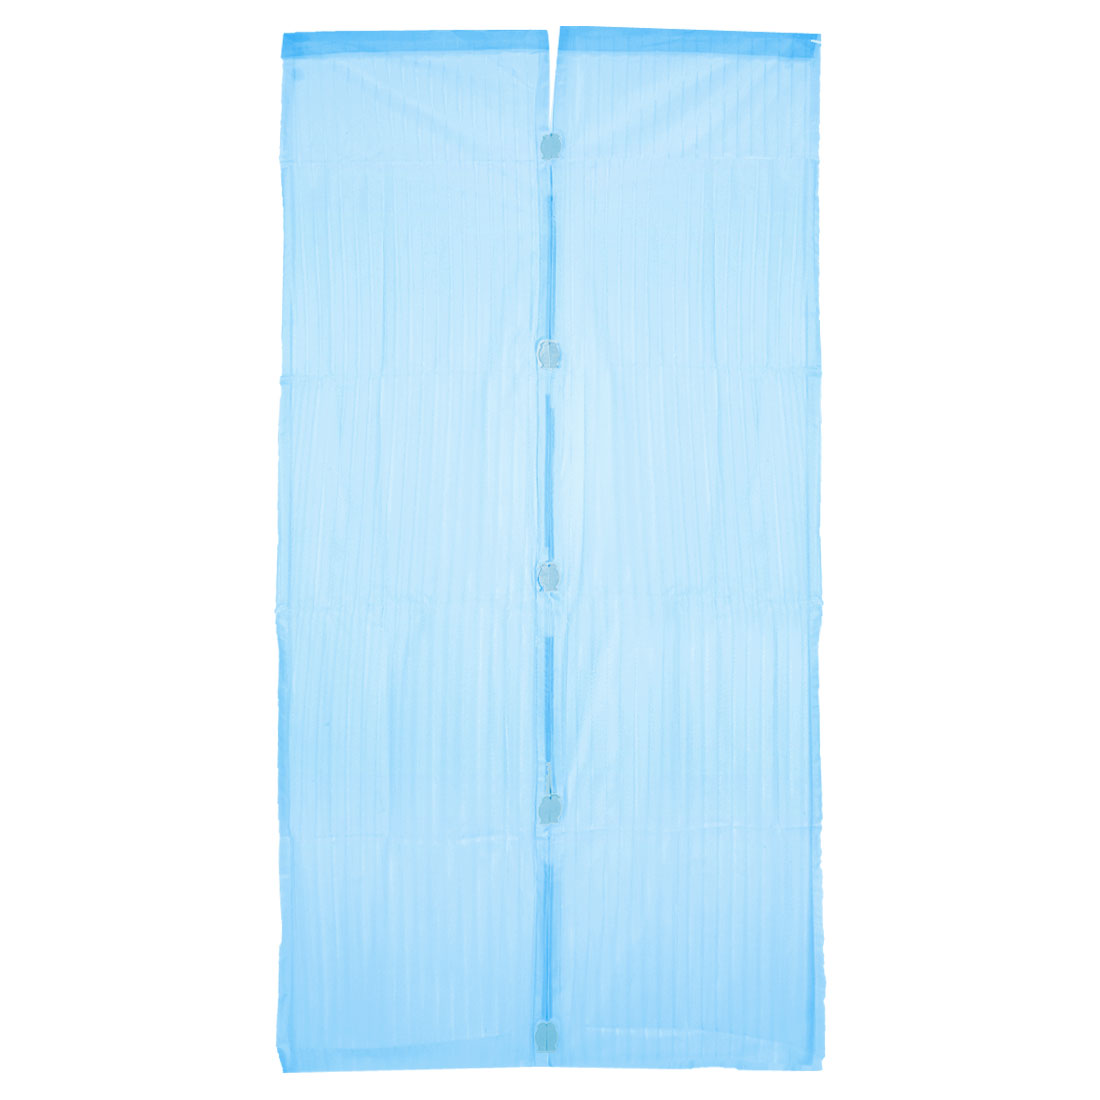 "Blue Nylon Door Panel Panels Magnetic Curtain 82.7"" x 33.9"""